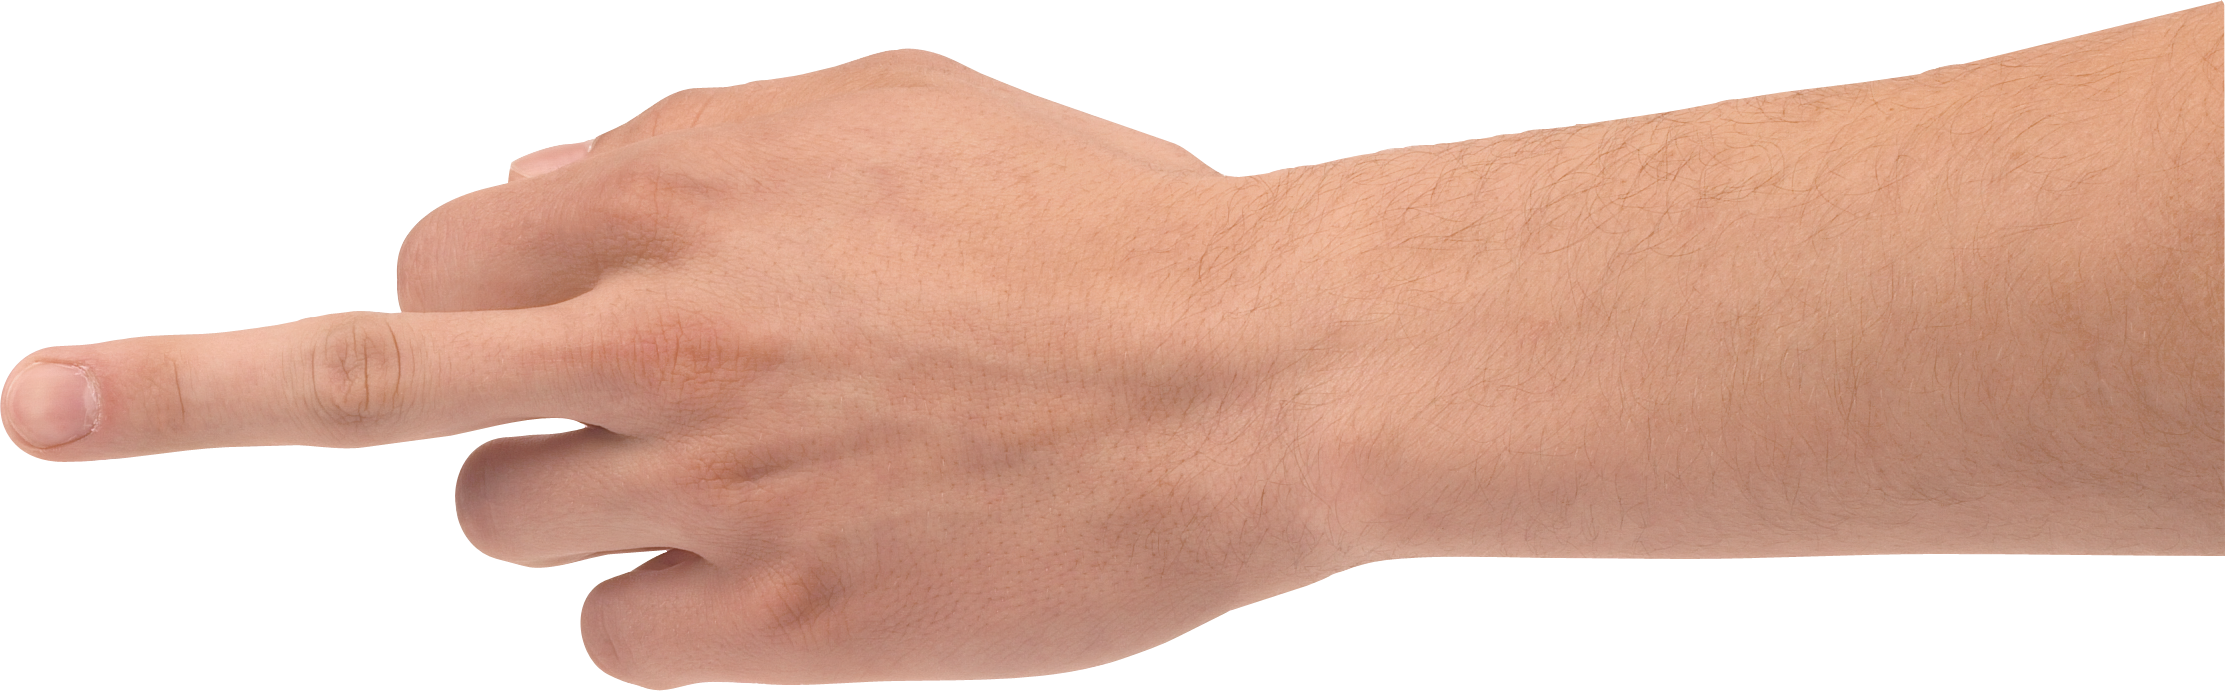 Hand png image transparent 6